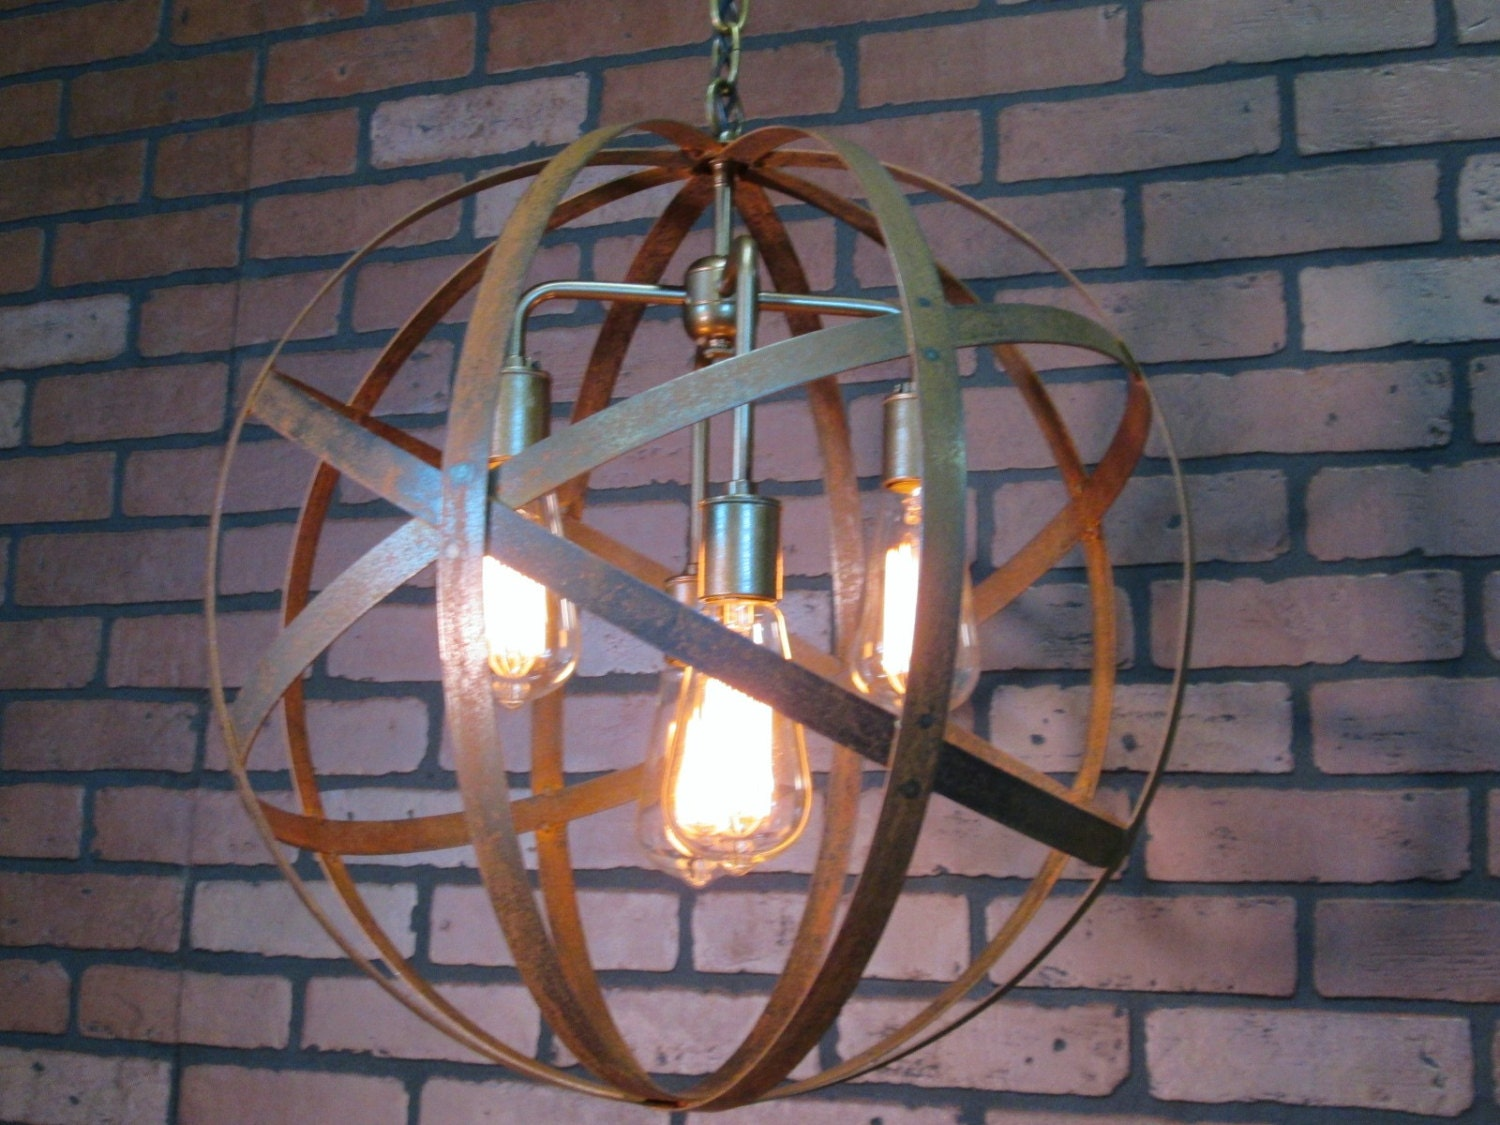 Ceiling Lights Rustic : Rustic industrial orb ceiling light sphere diameter